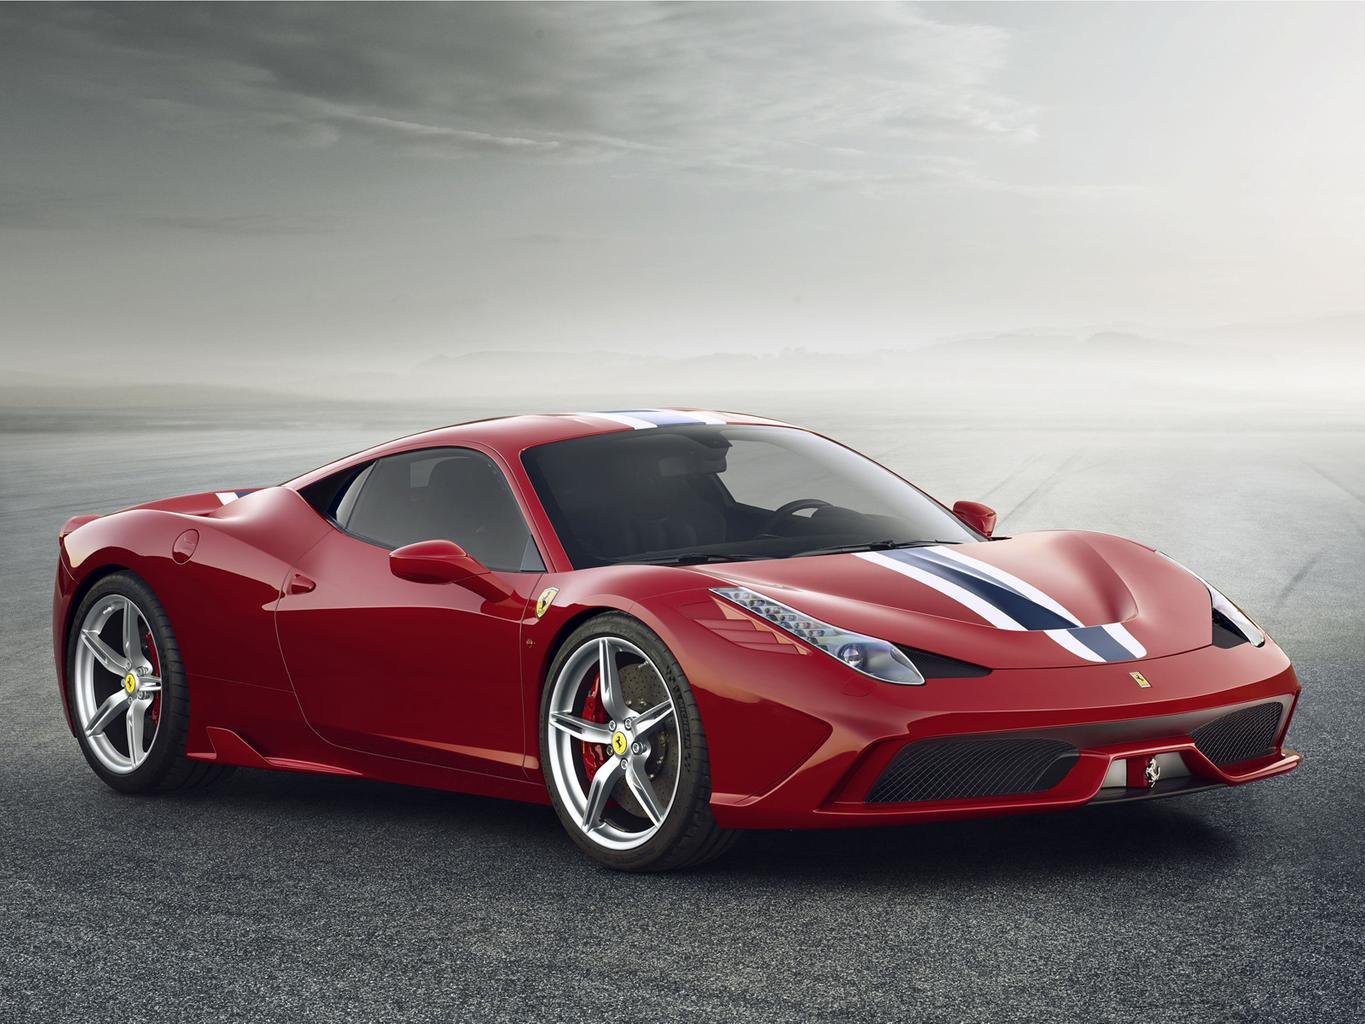 Ferrari 458 Speciale set for Frankfurt debut